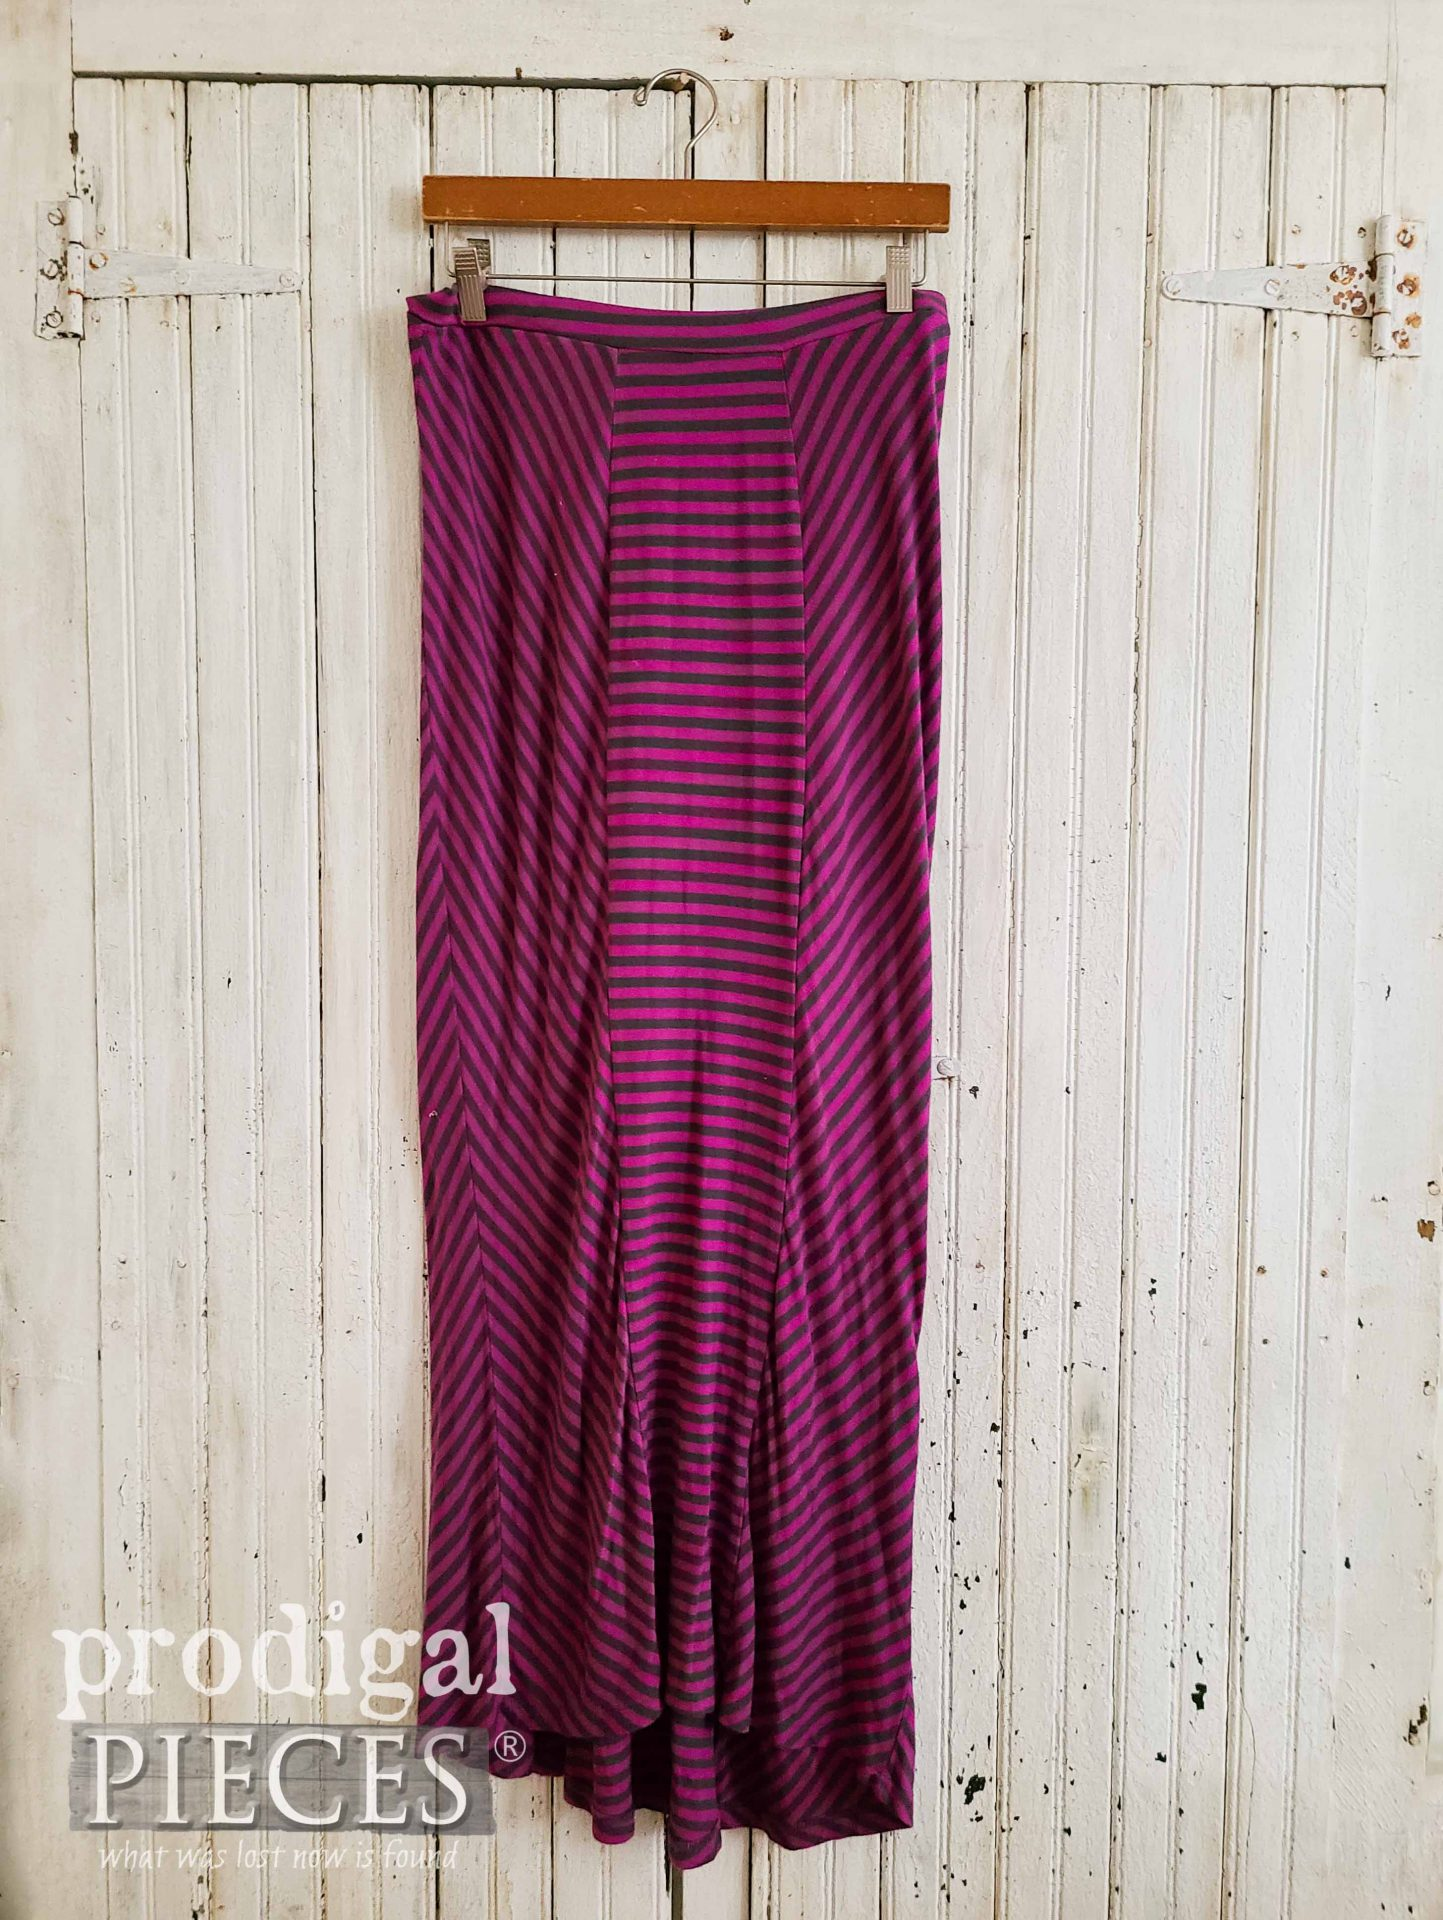 Pink Striped Skirt Before Refashion by Prodigal Pieces | prodigalpieces.com